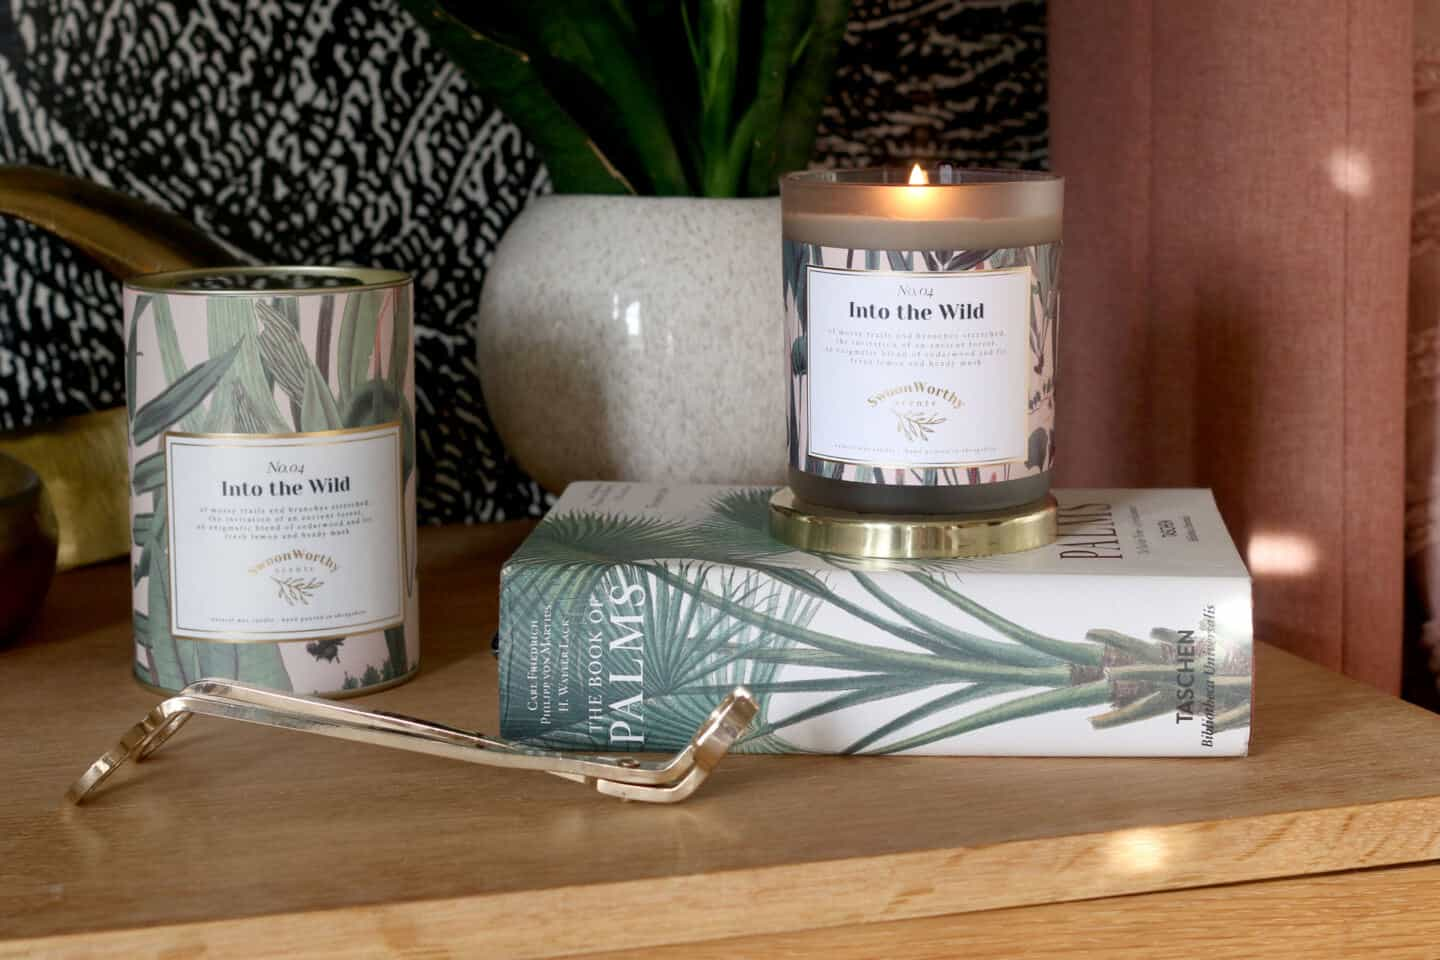 Into the Wild luxury eco-conscious scented candles by Swoon Worthy Scents sat atop a book on a sideboard with a plant behind and a wick trimmer in front.